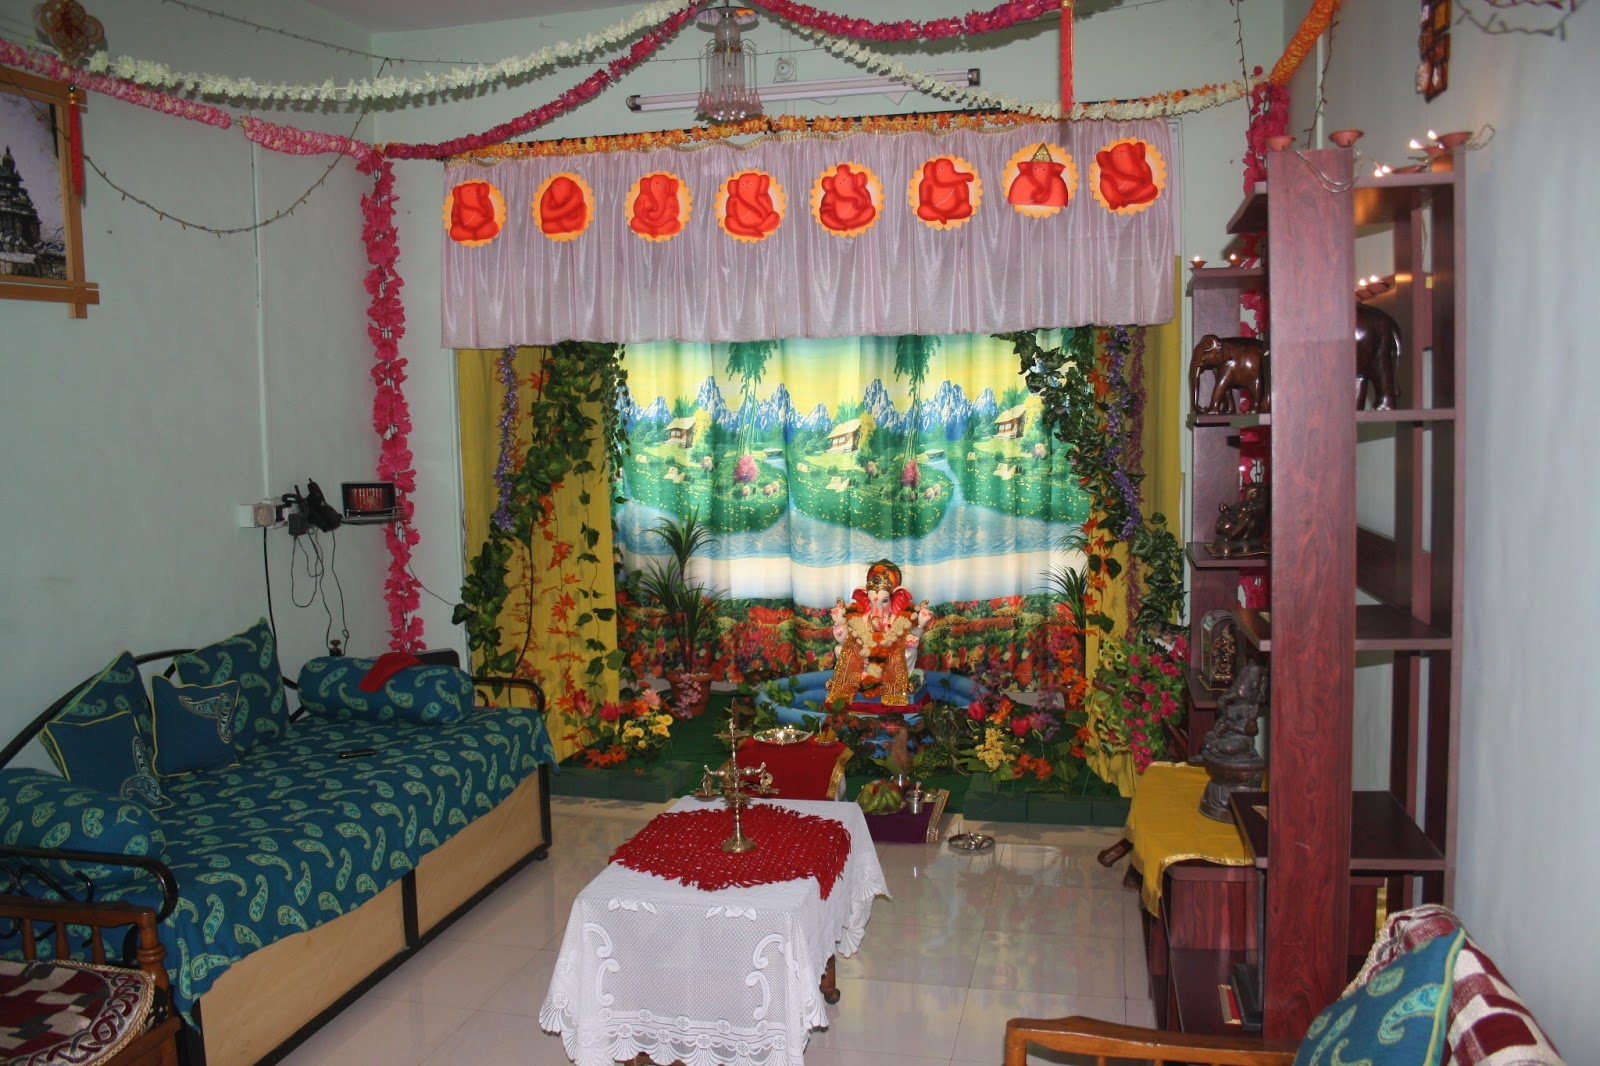 Ganpati Decoration Ideas At Home With Curtains